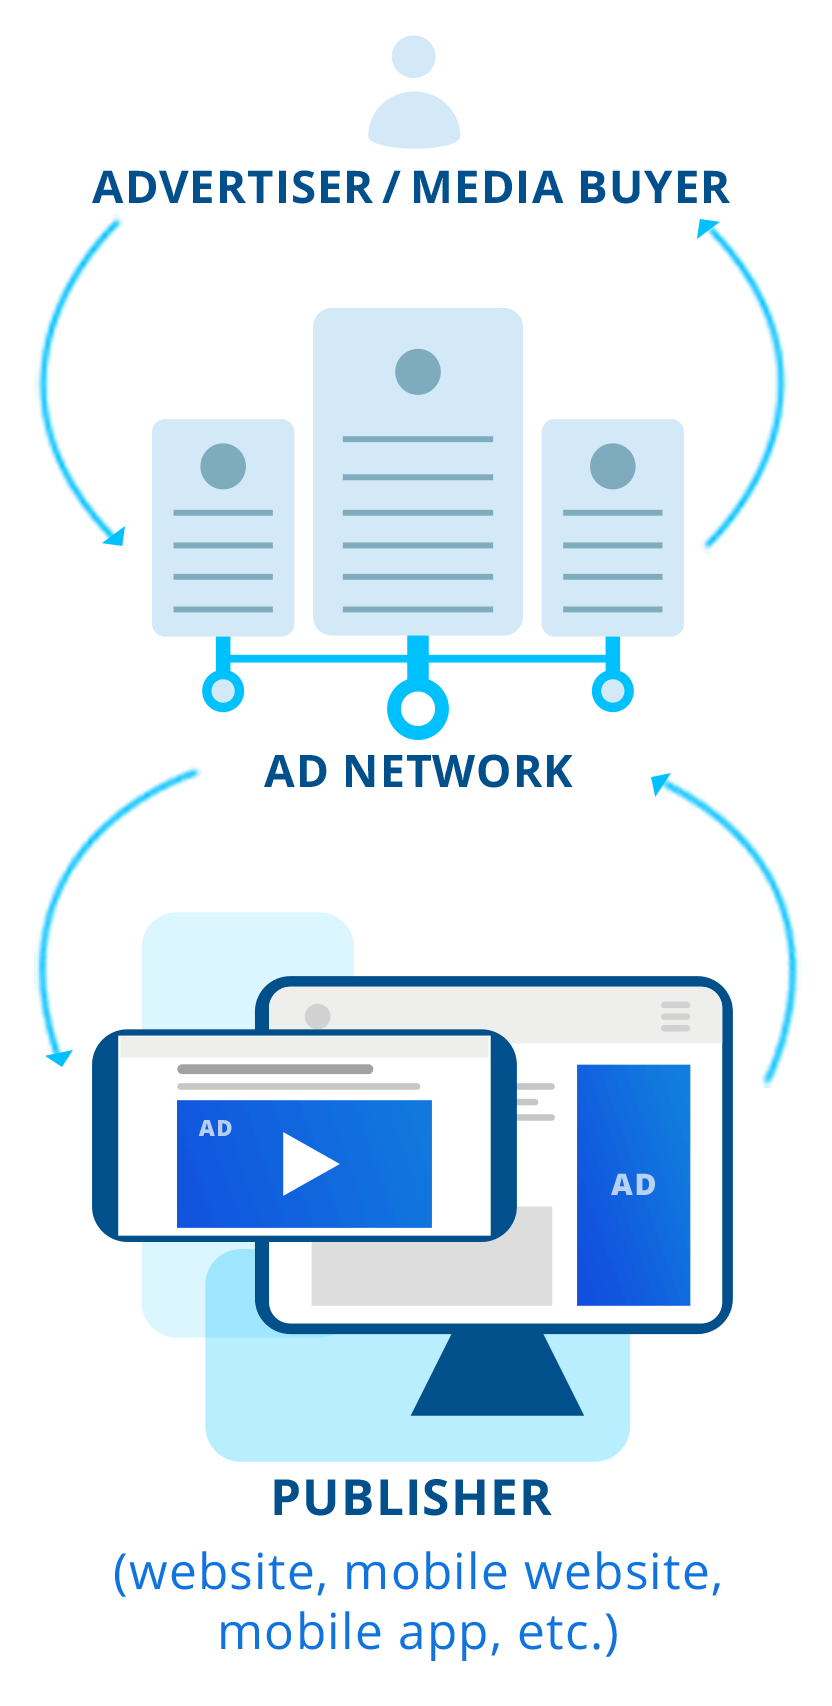 Advertising Networks in the online advertising ecosystem